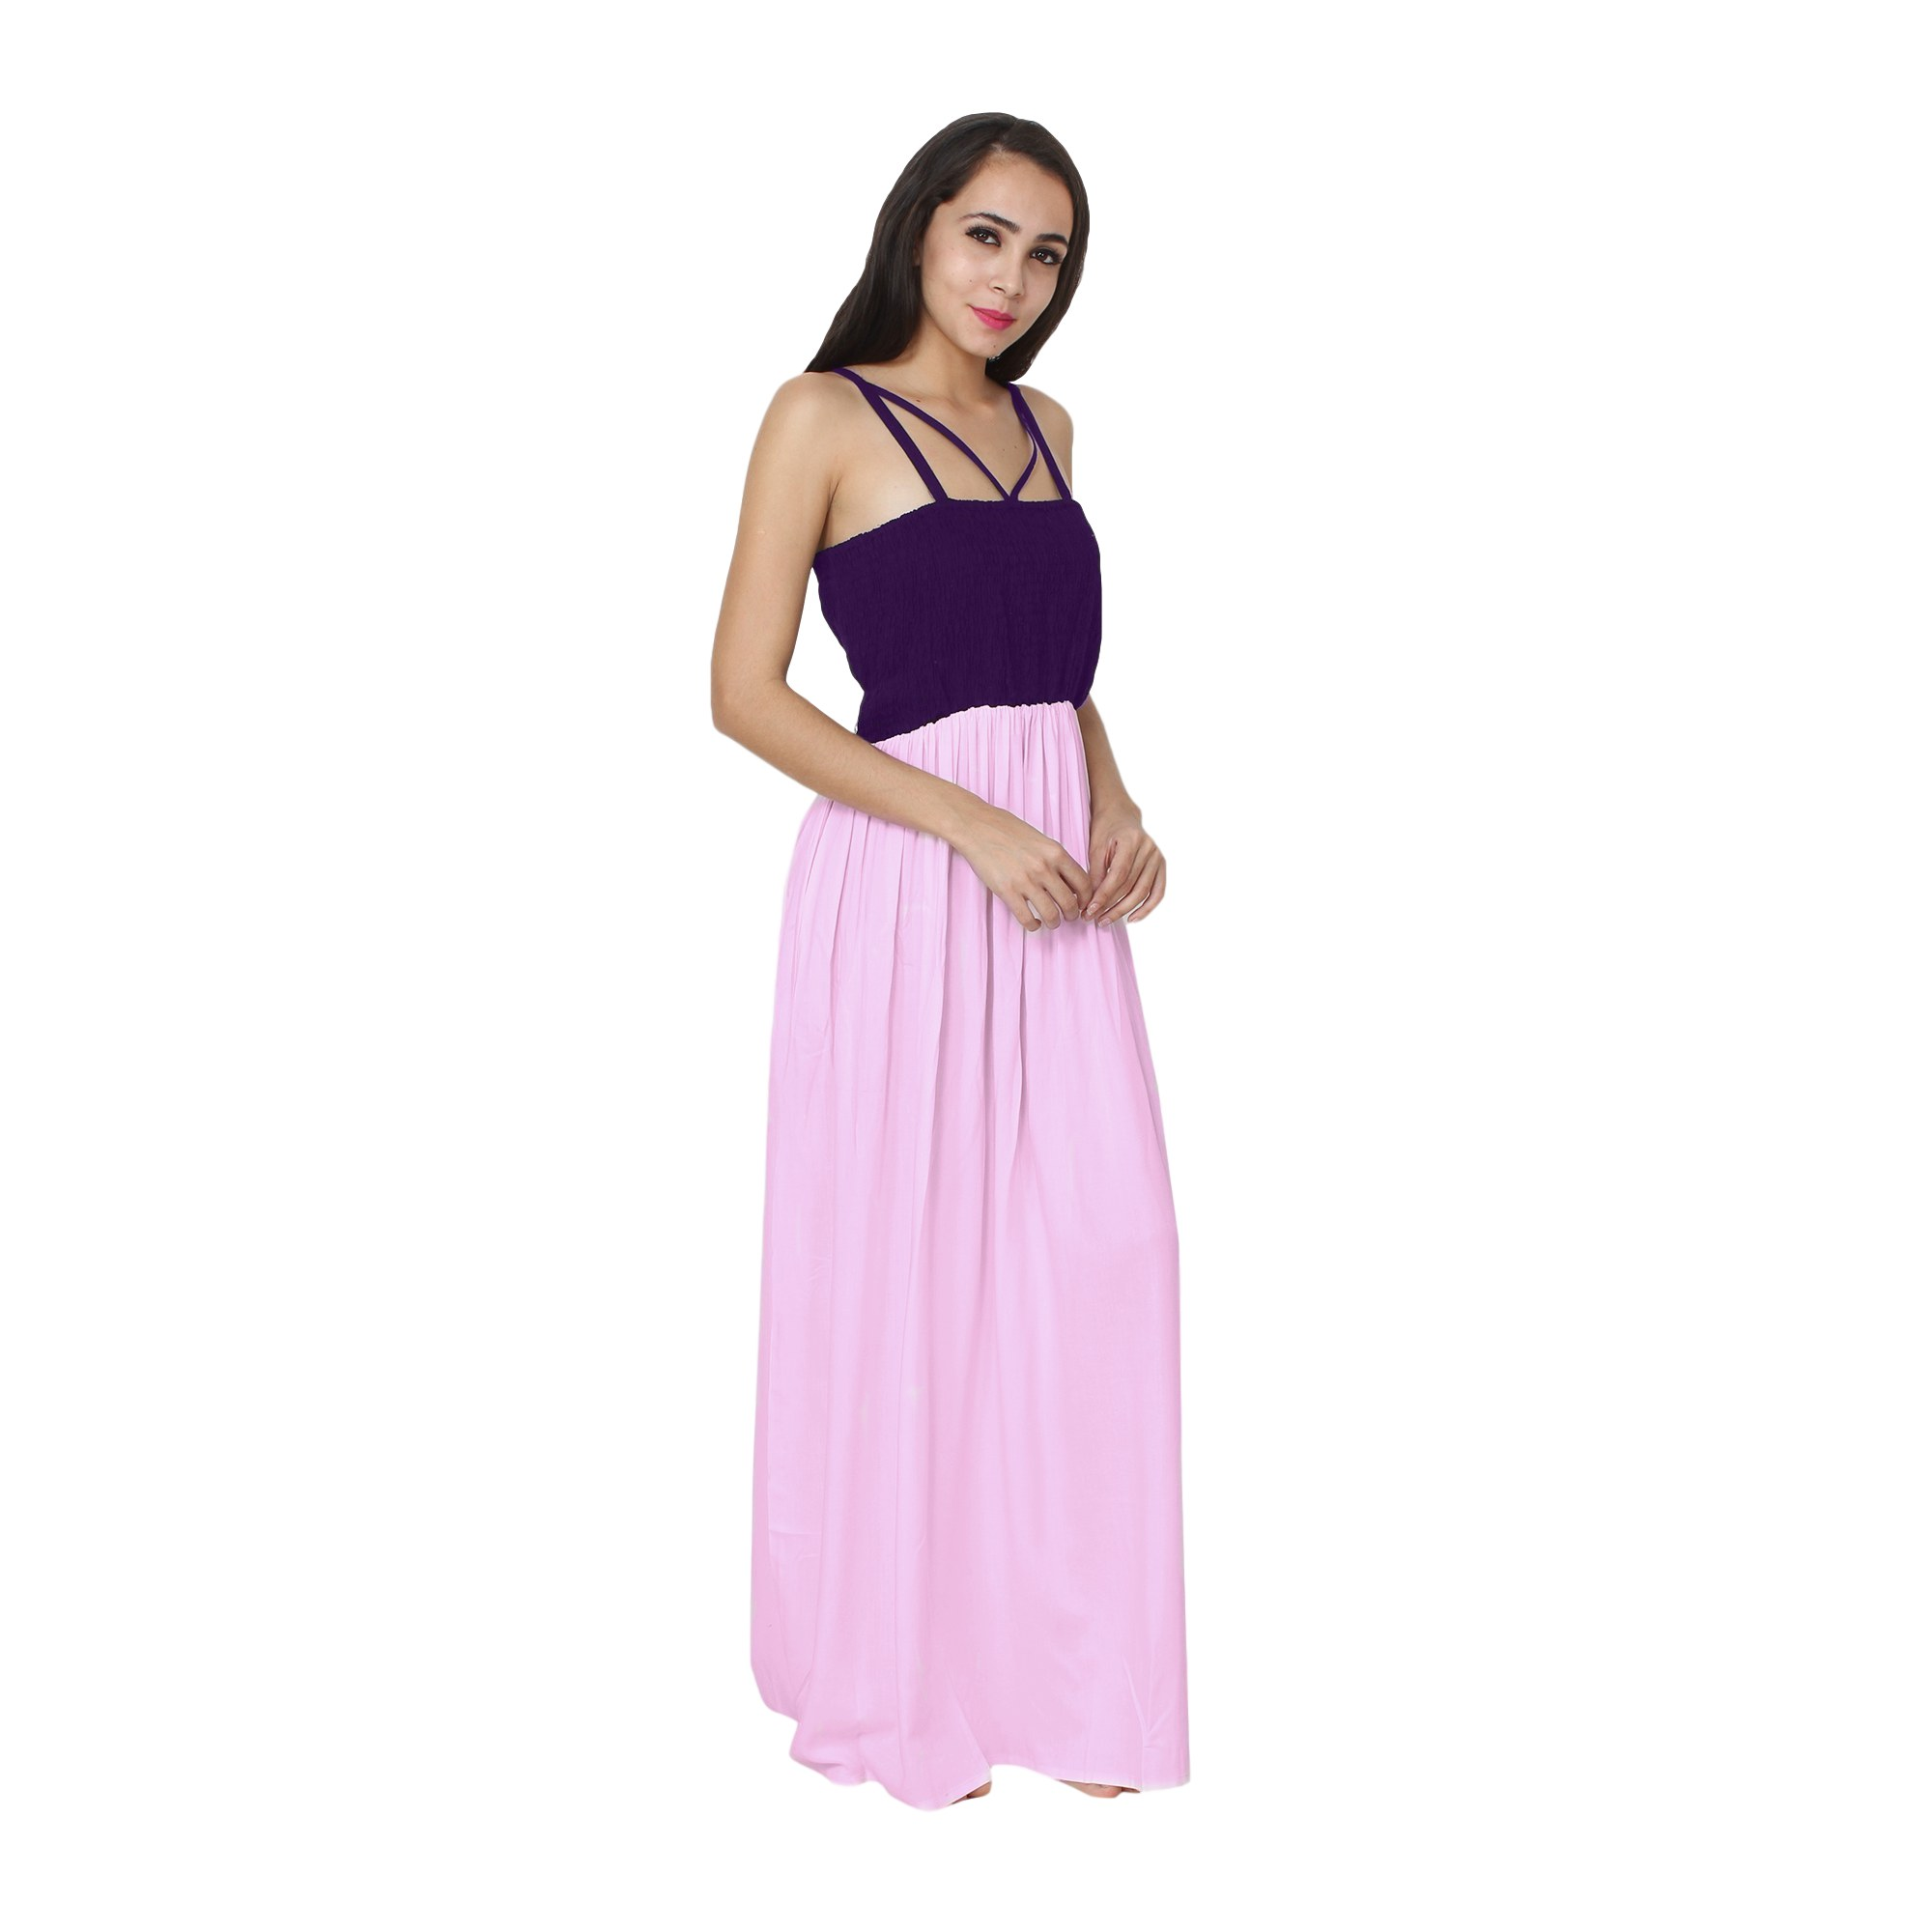 Embroidered Blouson Maxi Dress in Purple:Baby Pink